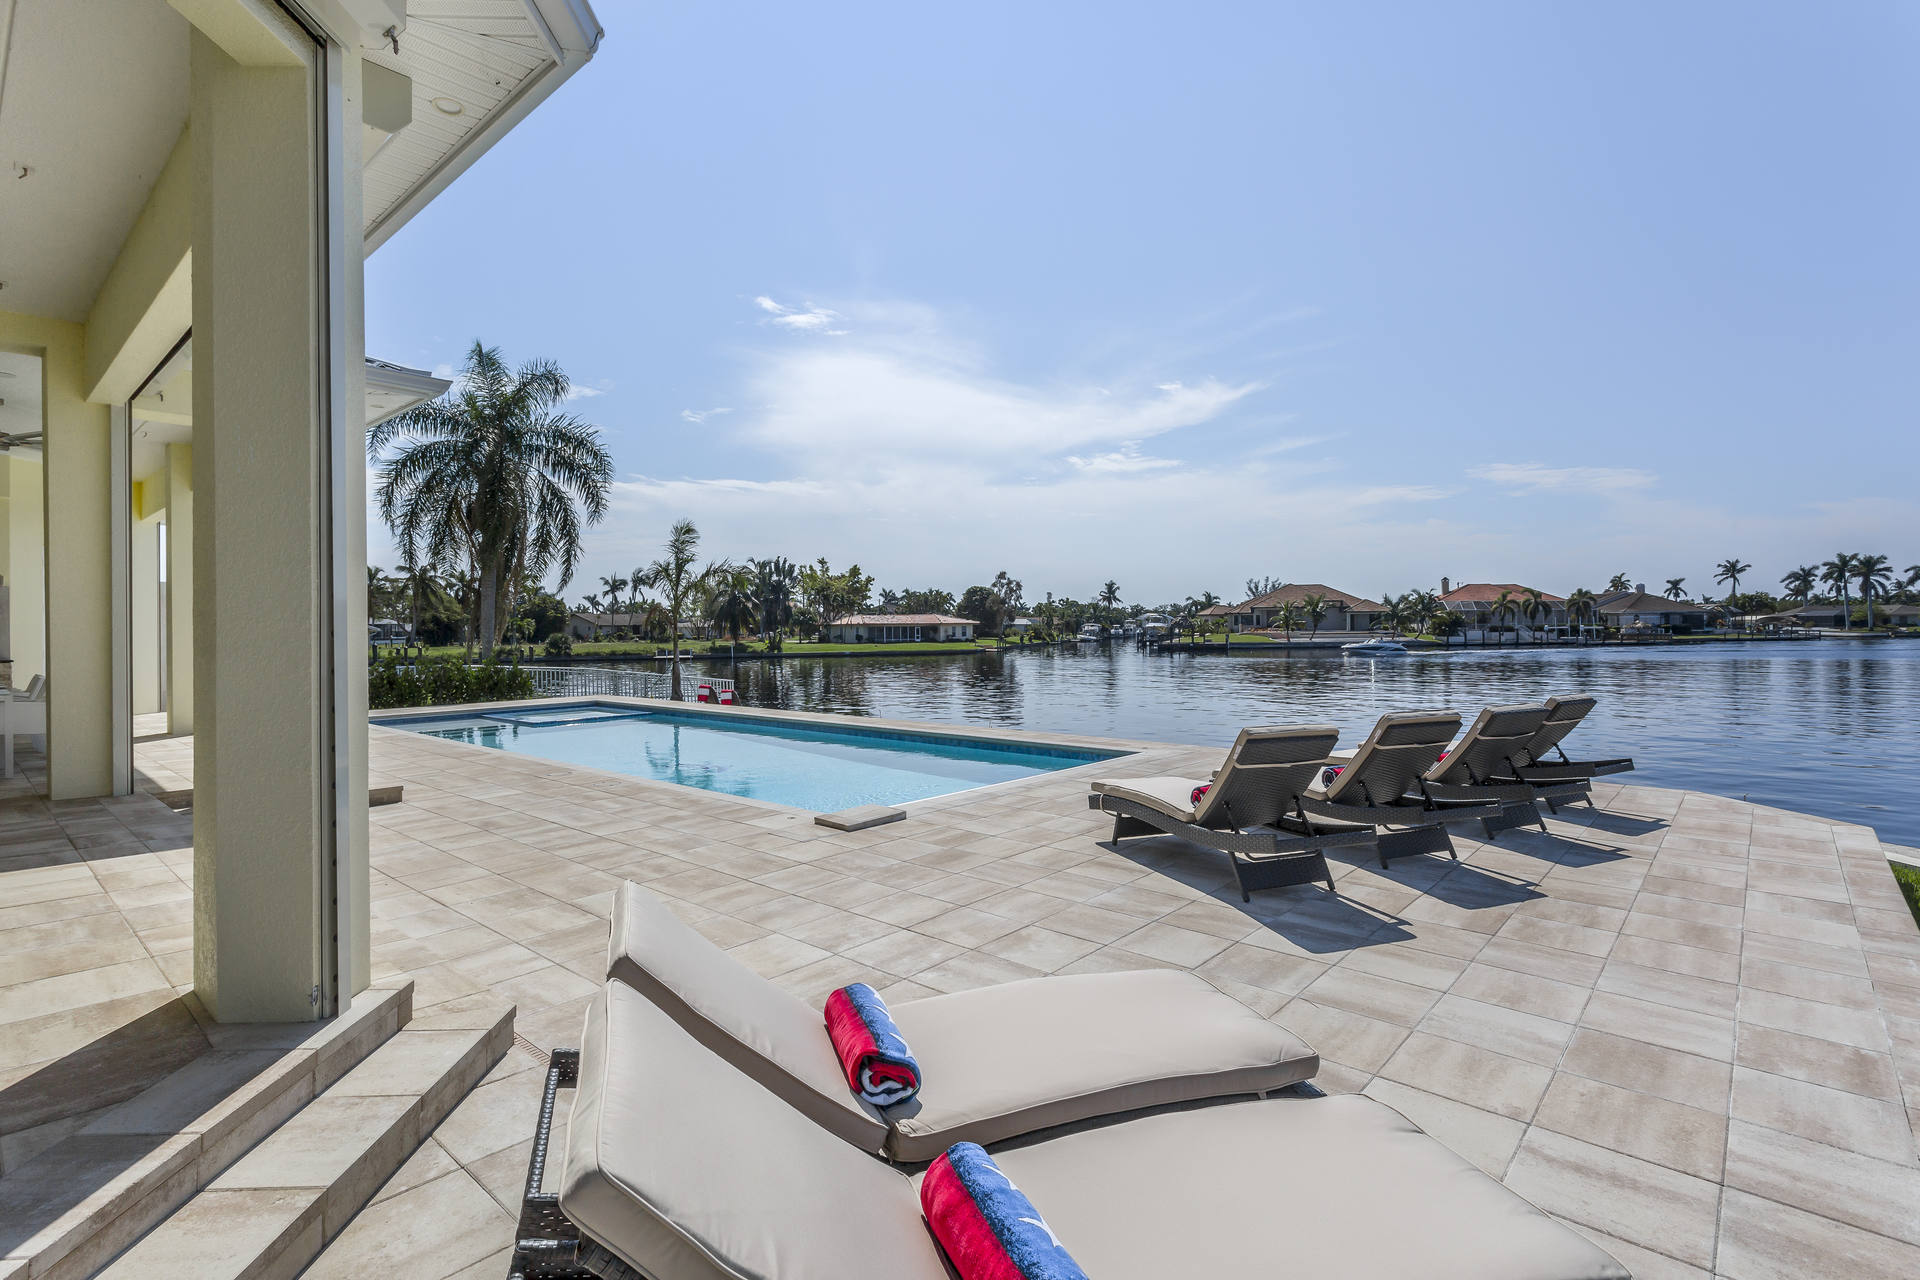 Pool area in Cape Coral